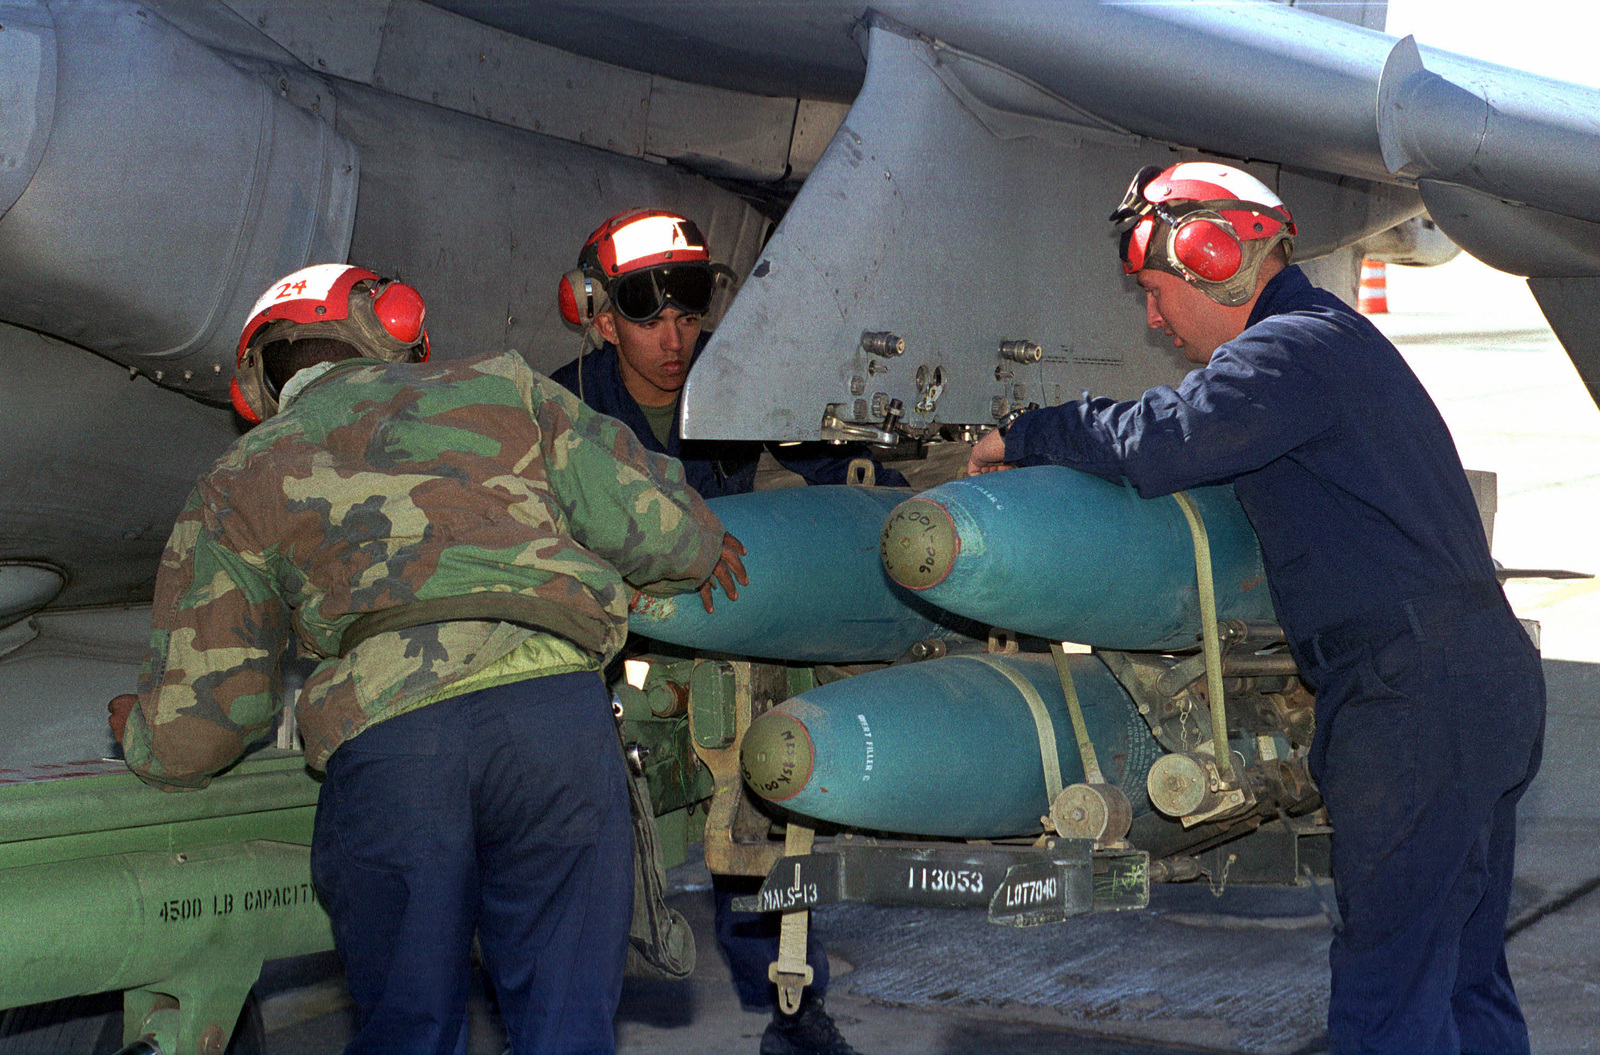 Marines From Fixed Wing Attack Squadron 513 Aviation Ordnance Load 500 Pound MK 84 Inert Training